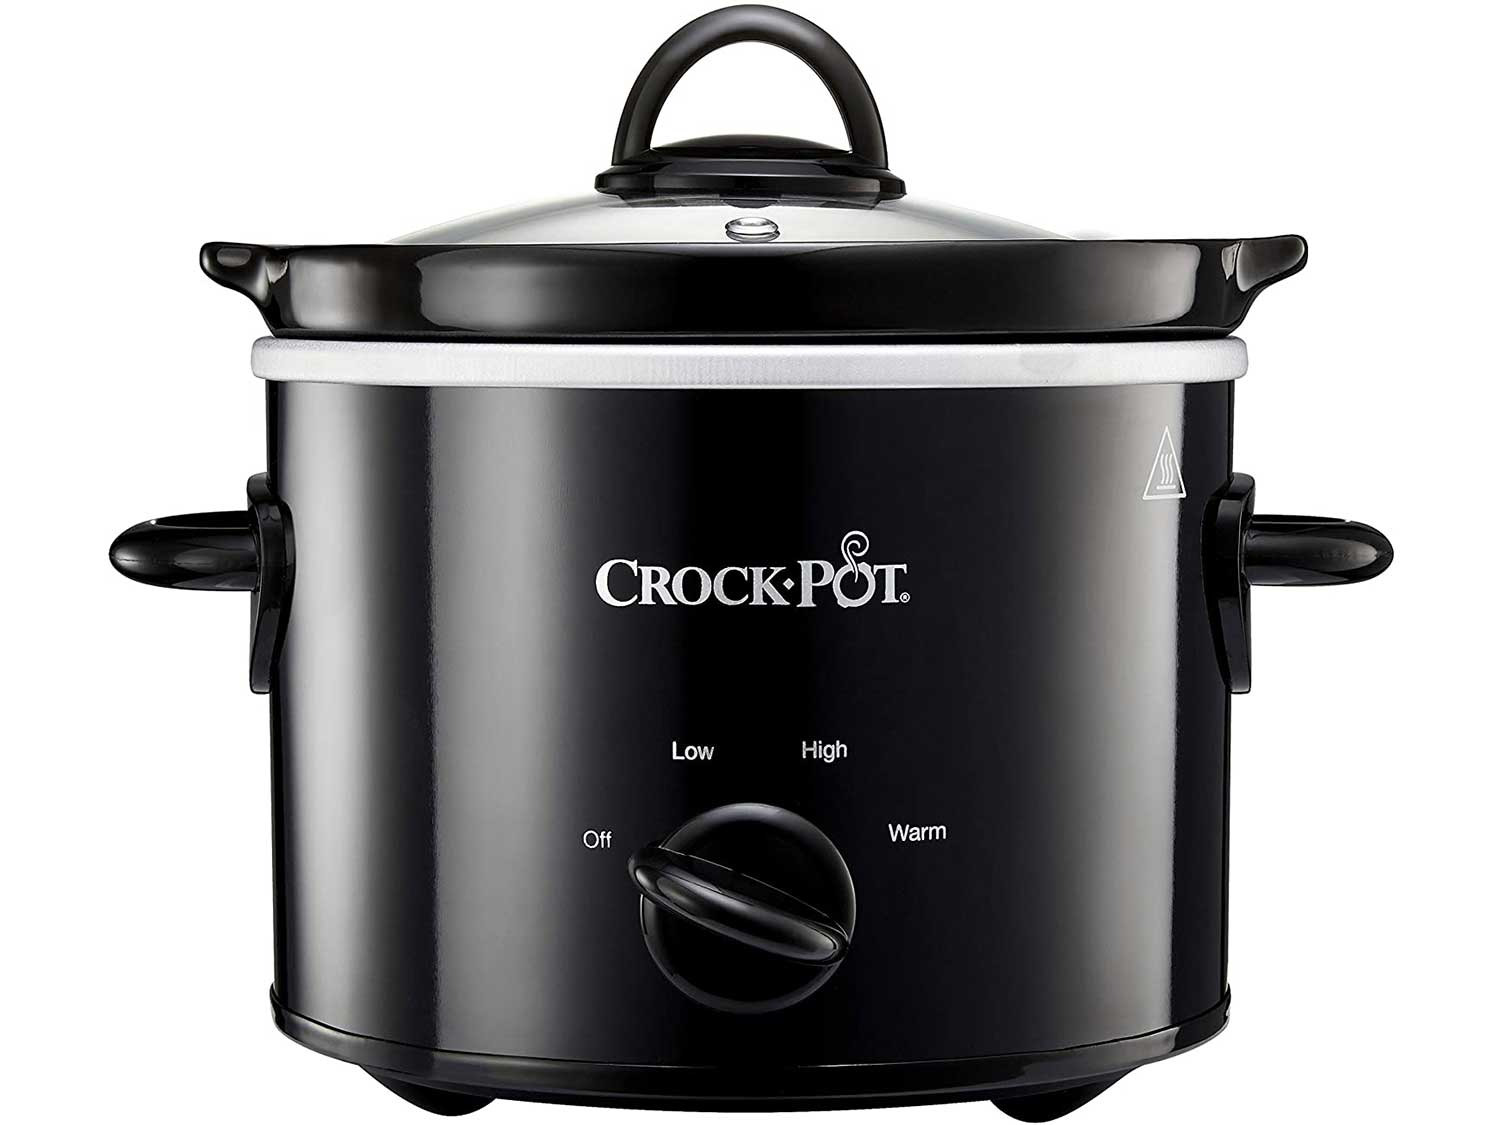 Crock-Pot Slow Cooker   Removable Easy-Clean Ceramic Bowl   1.8L Small Slow Cooker (Serves 1-2 People)   Black   [CSC080]